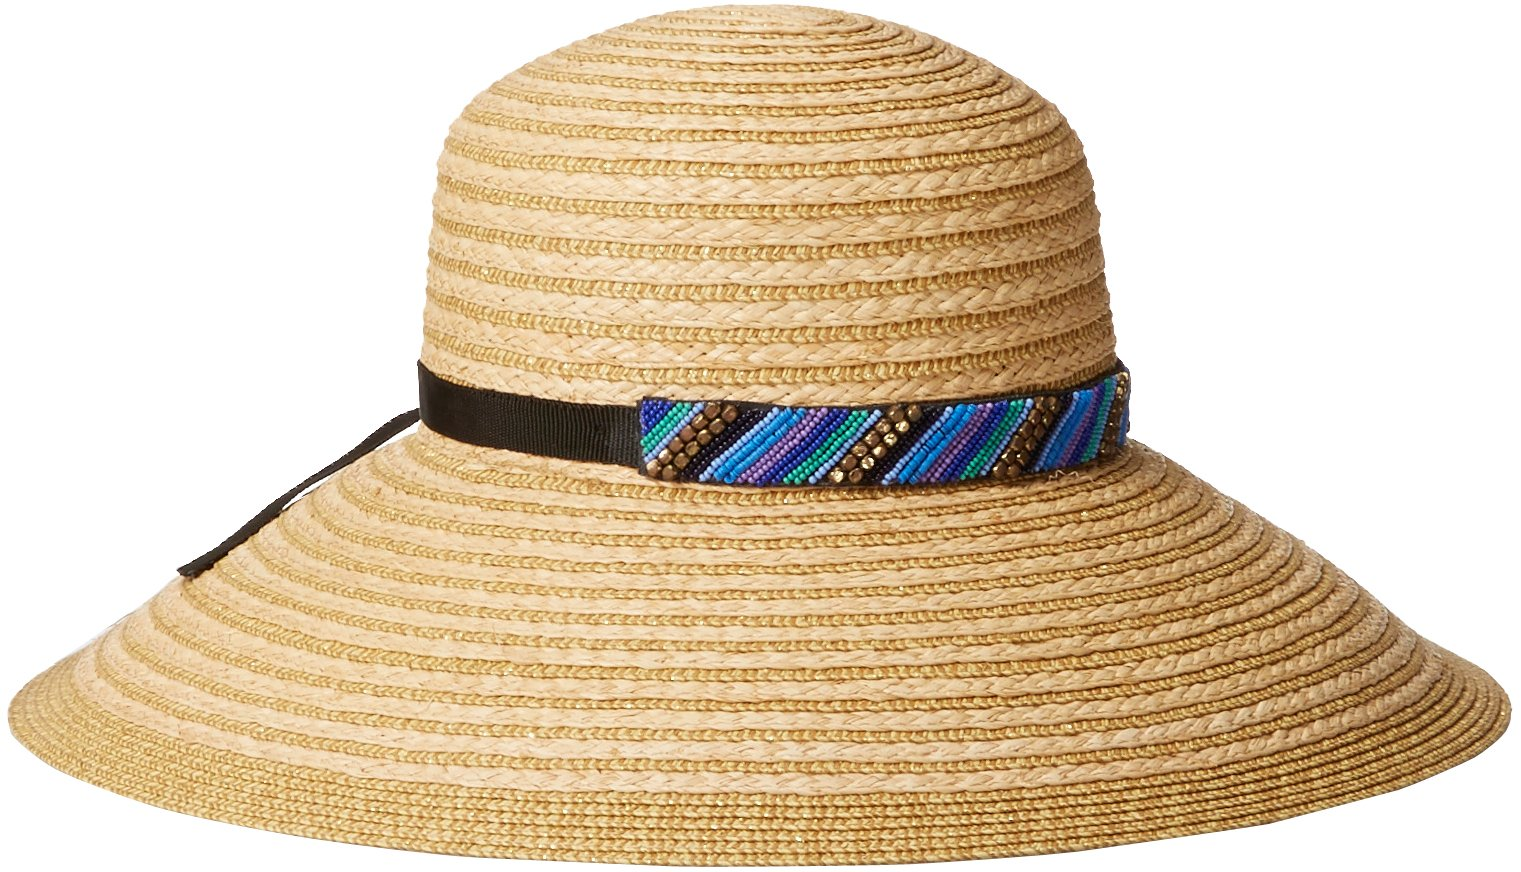 Gottex Women's Women's Marrakesh Raffia Packable Sun Hat, Rated UPF 50+ For Maximum Sun Protection, Blue/Multi, One Size by Gottex